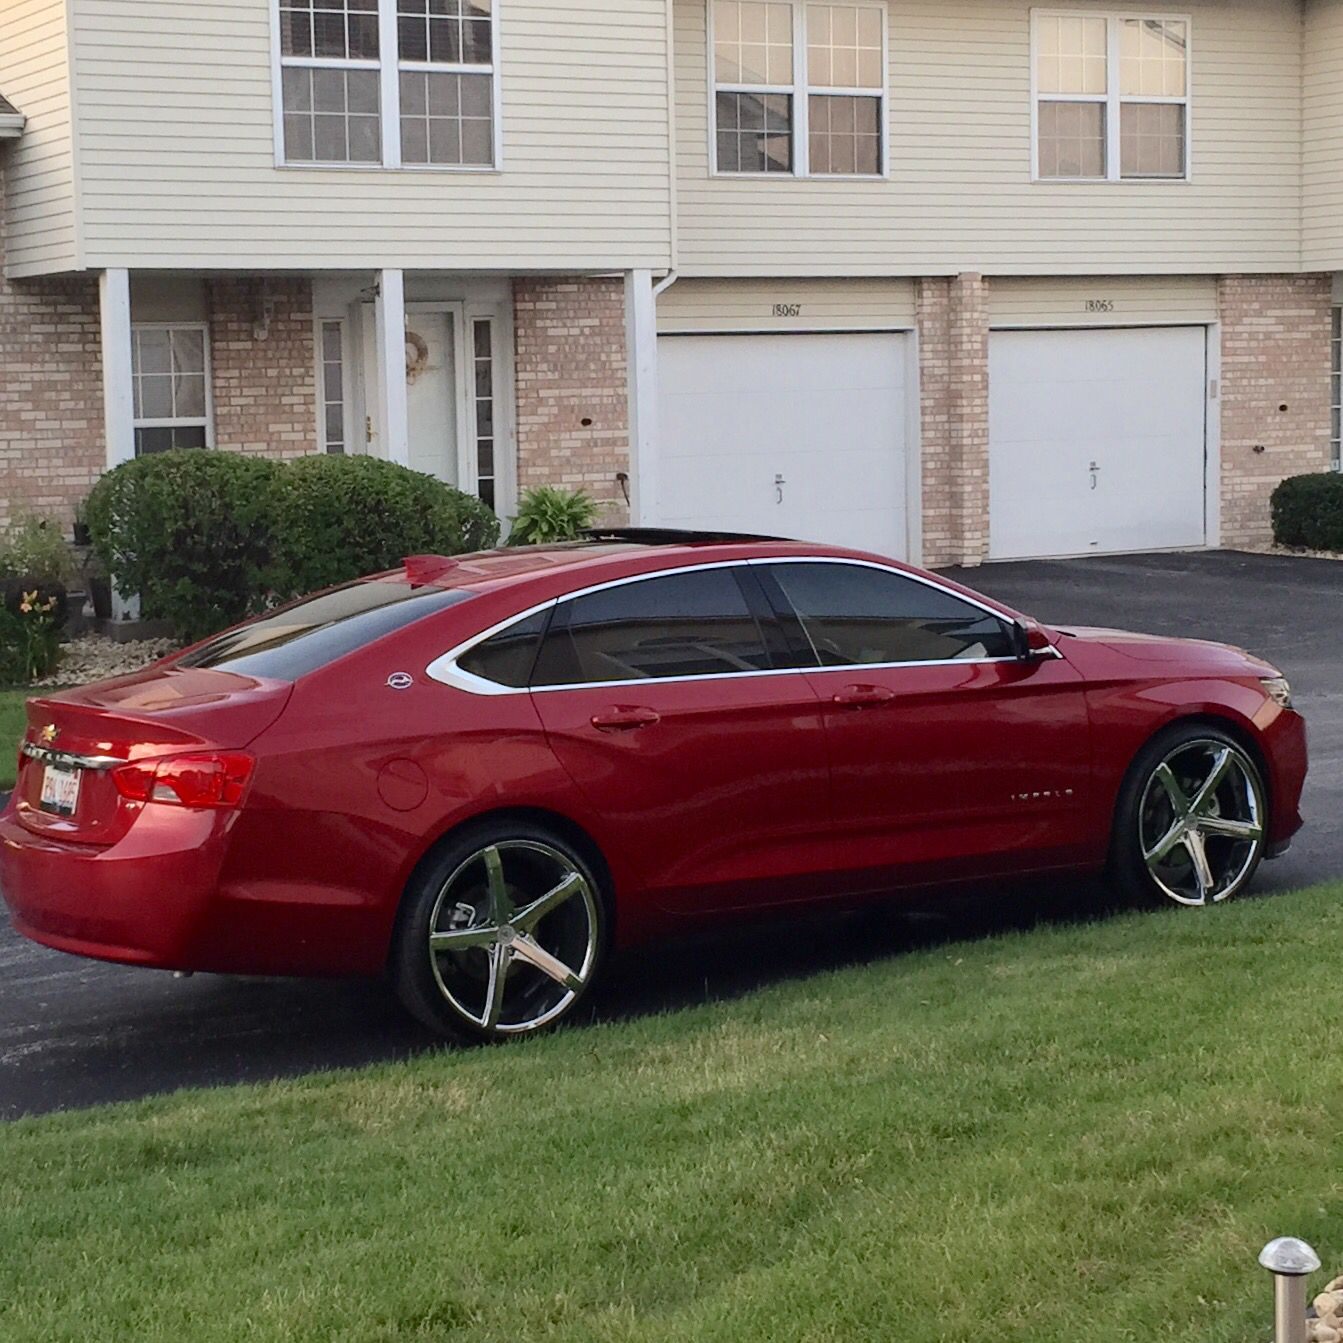 Pin By Aaron On Cars In 2020 Impala Ltz Rims For Cars Impala